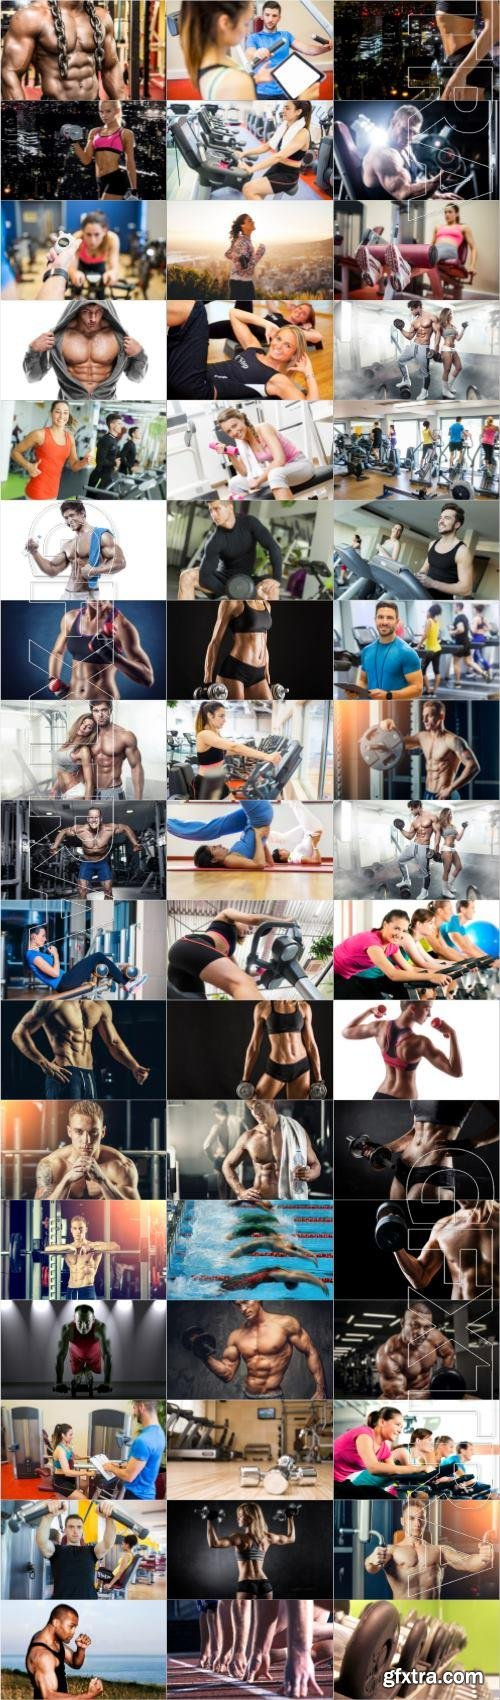 Sports and people large collection of stock photos